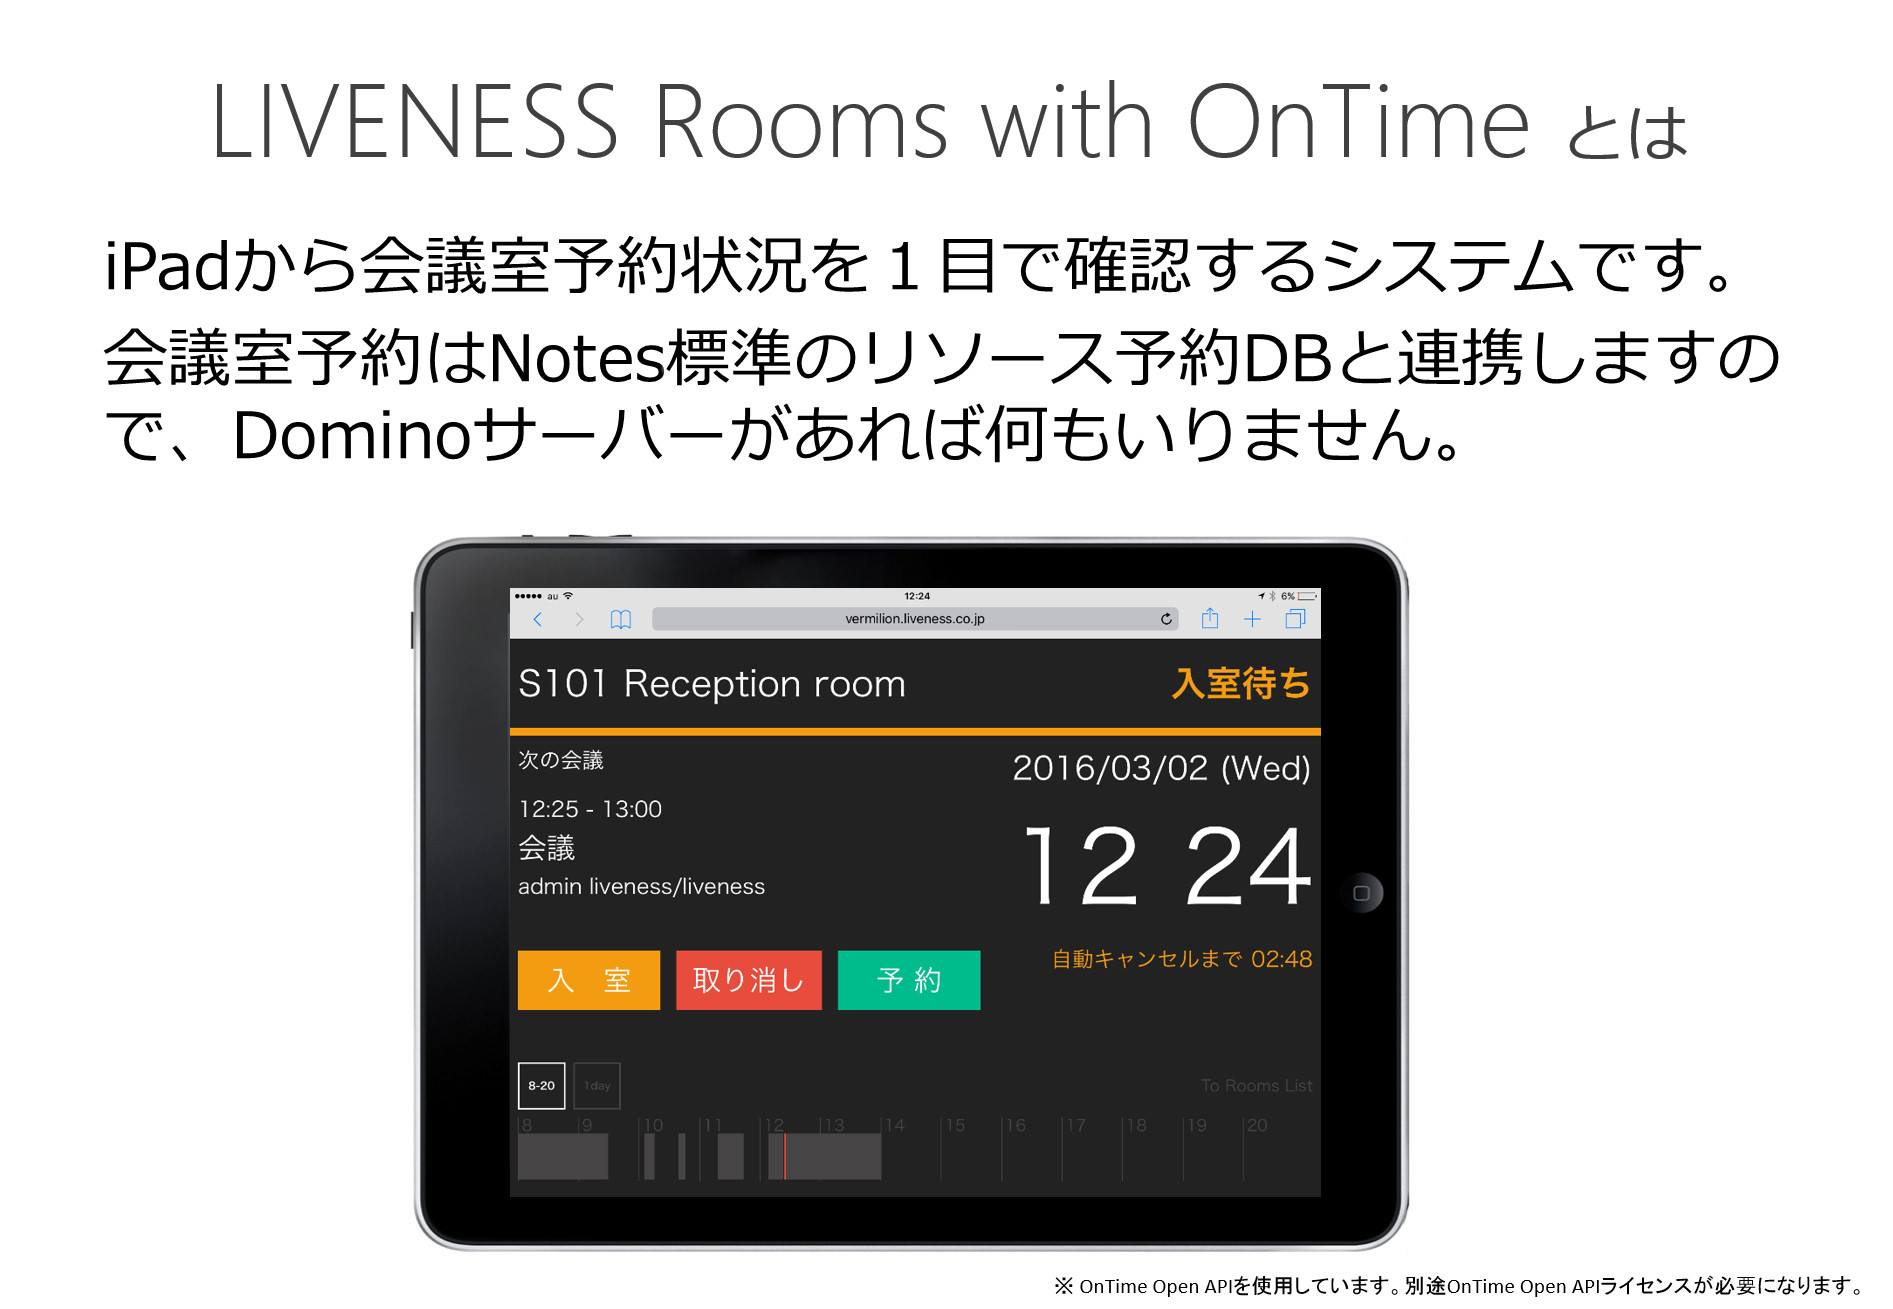 LIVENESS Rooms with OnTime画面サンプル